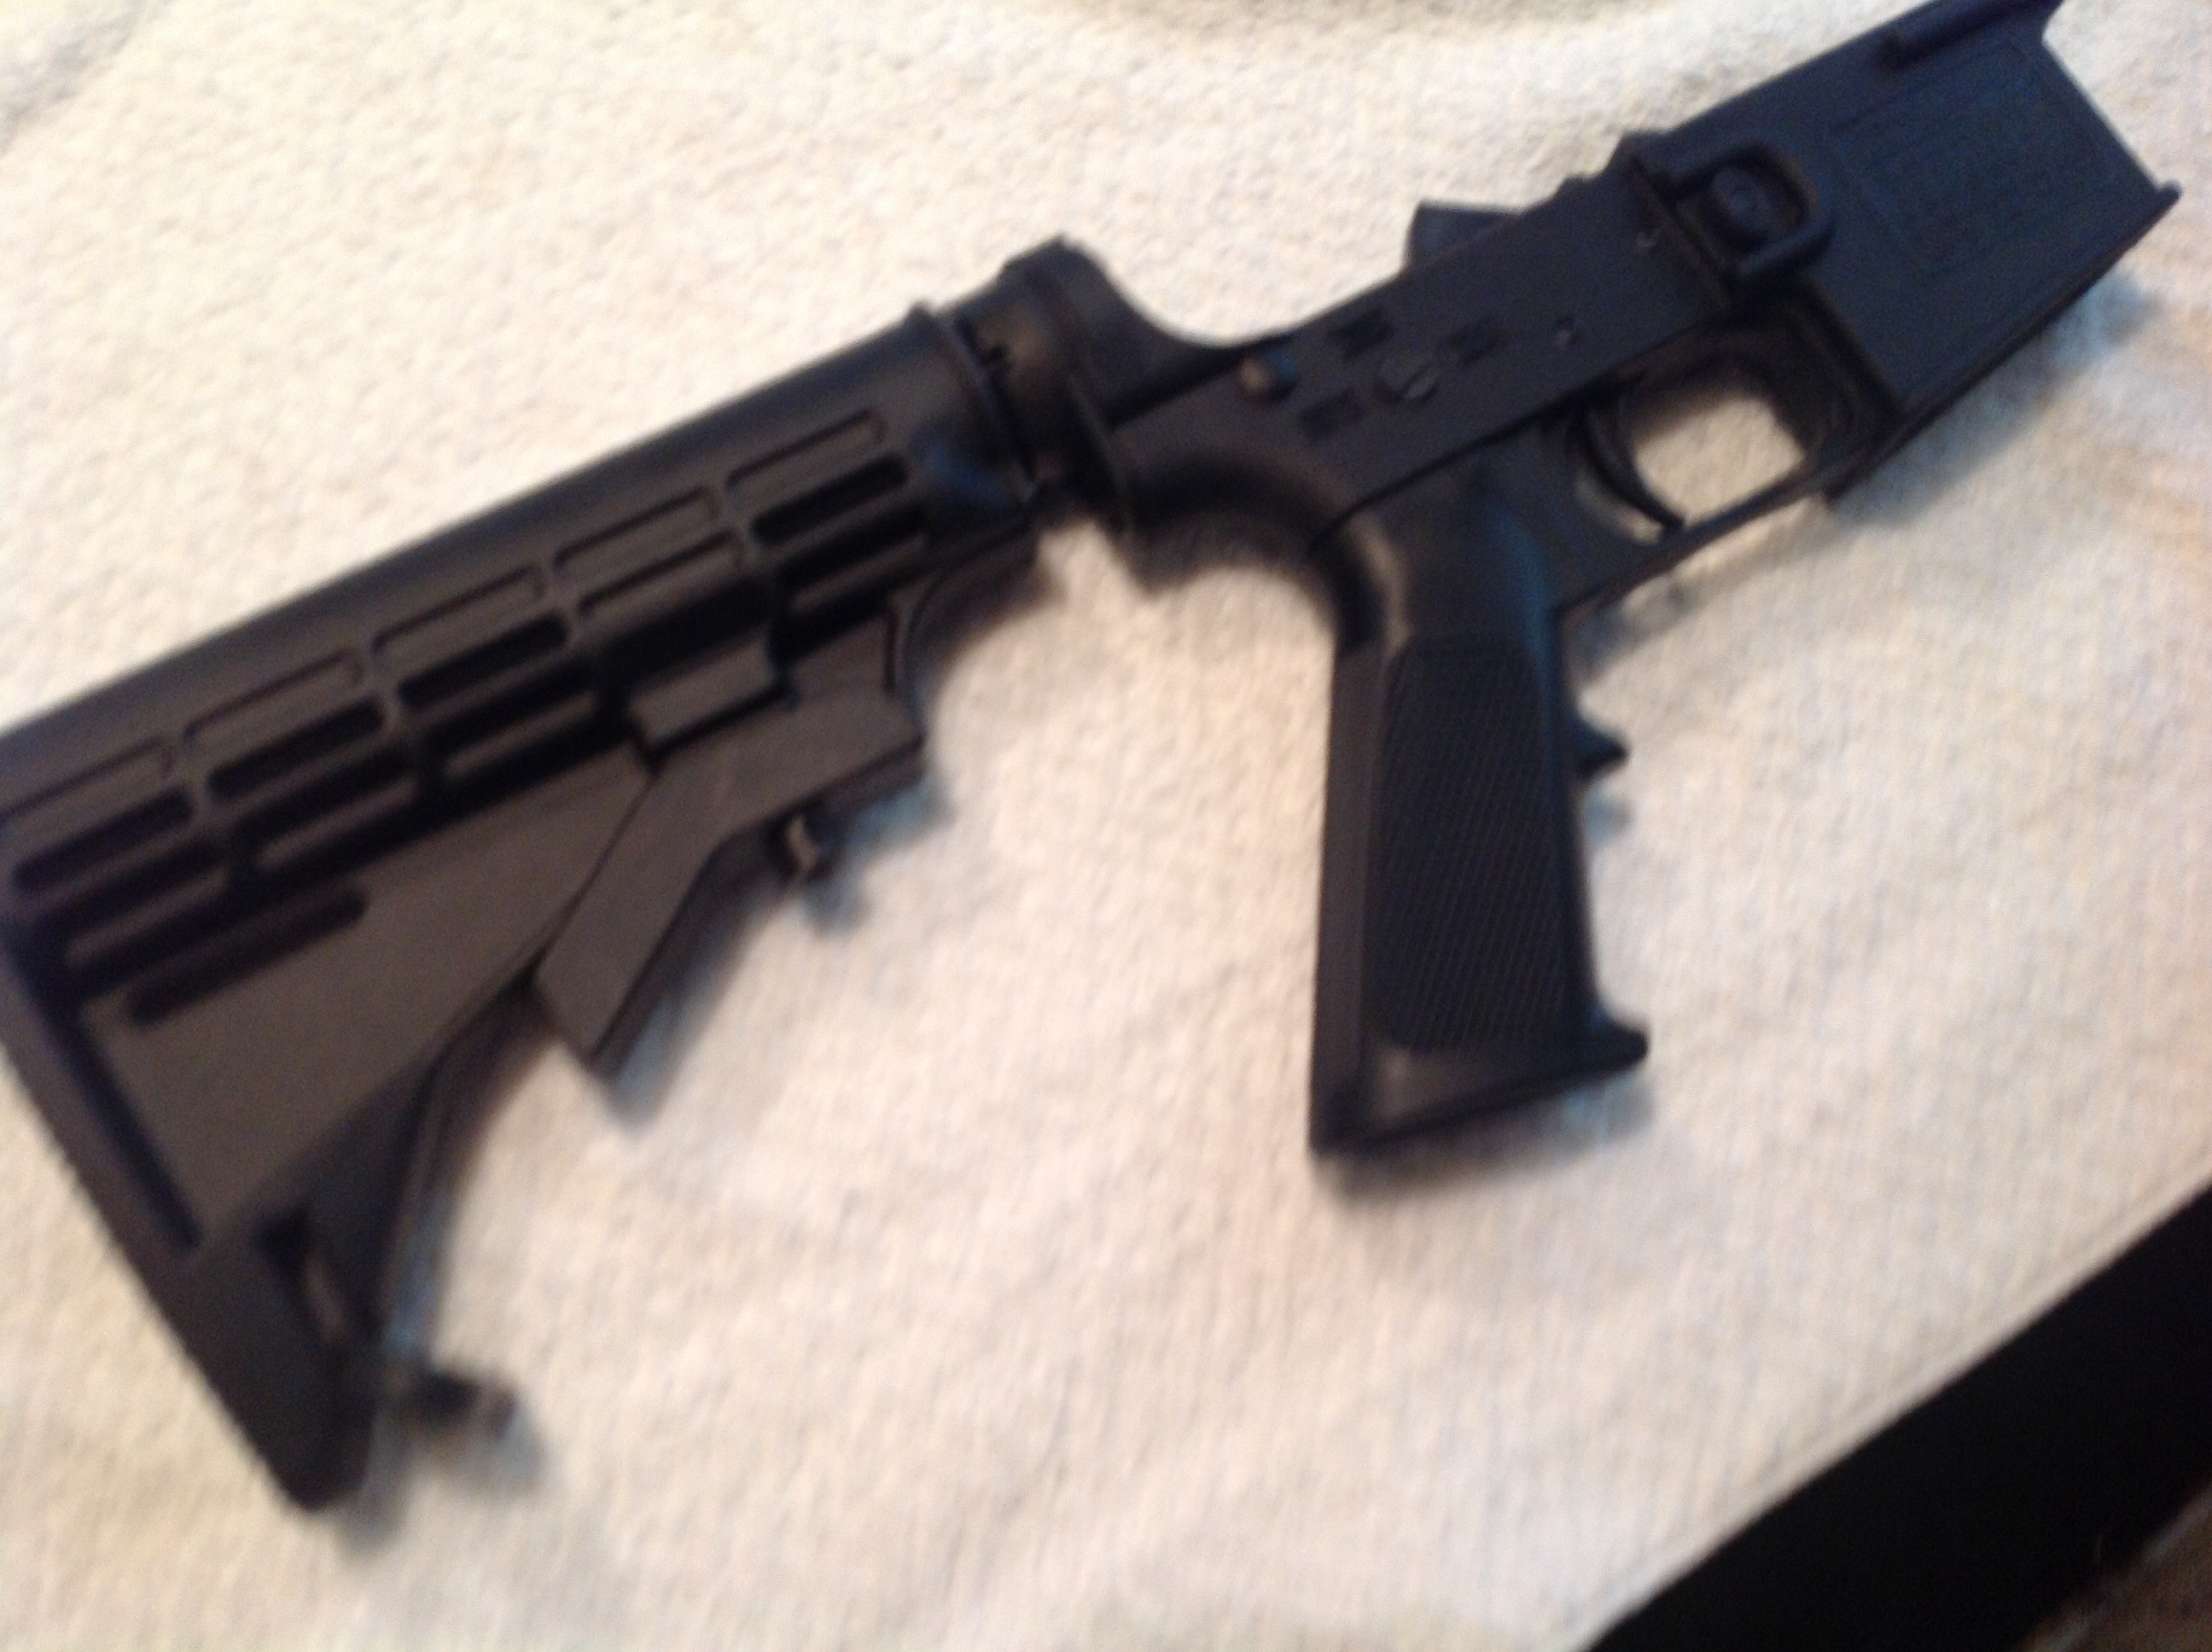 New Frontier Armory polymer lower